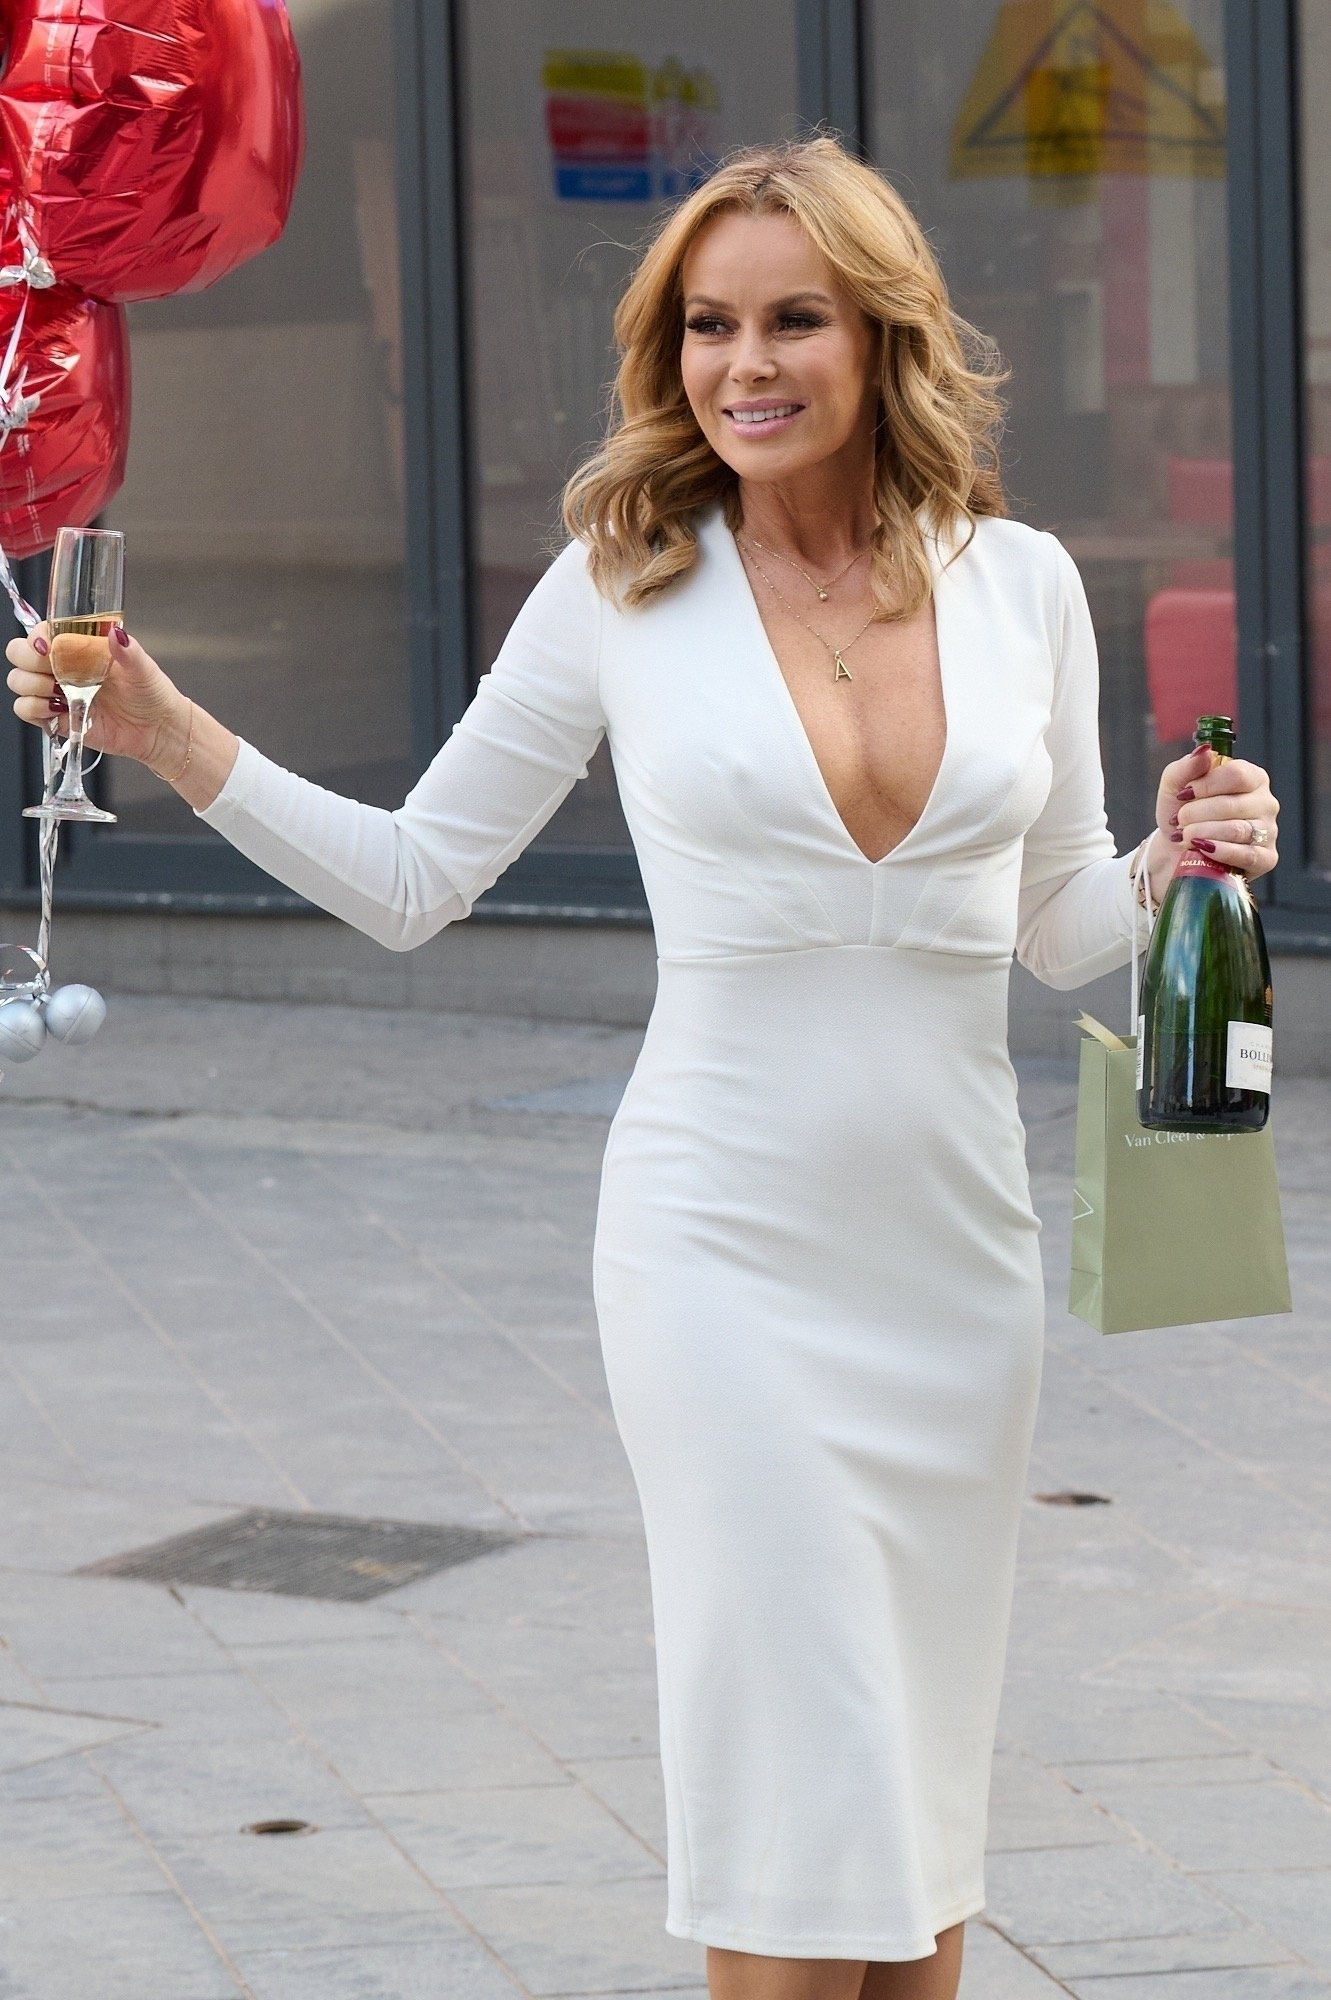 Amanda Holden with Hearts and Cleavage Leaving Global Studios in London